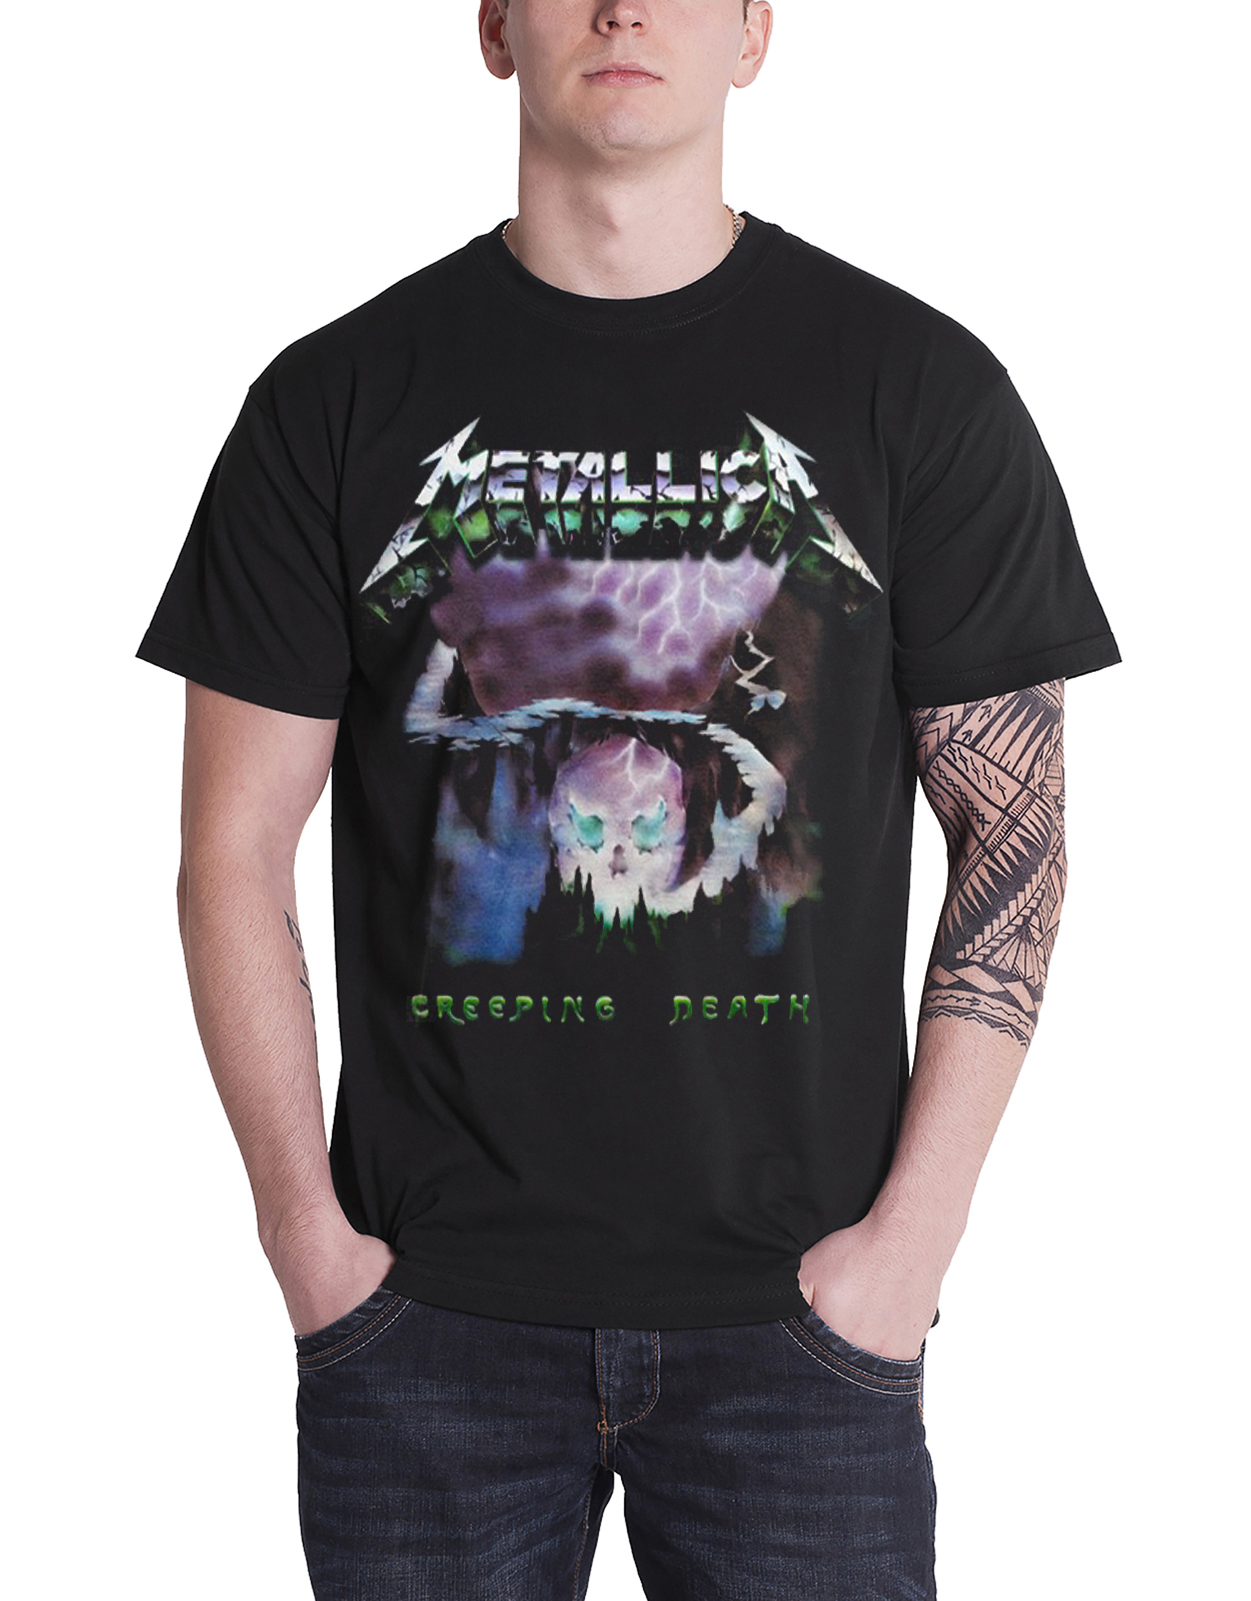 Official-Metallica-T-Shirt-Hardwired-Justice-for-all-RTL-band-logo-mens-new Indexbild 20